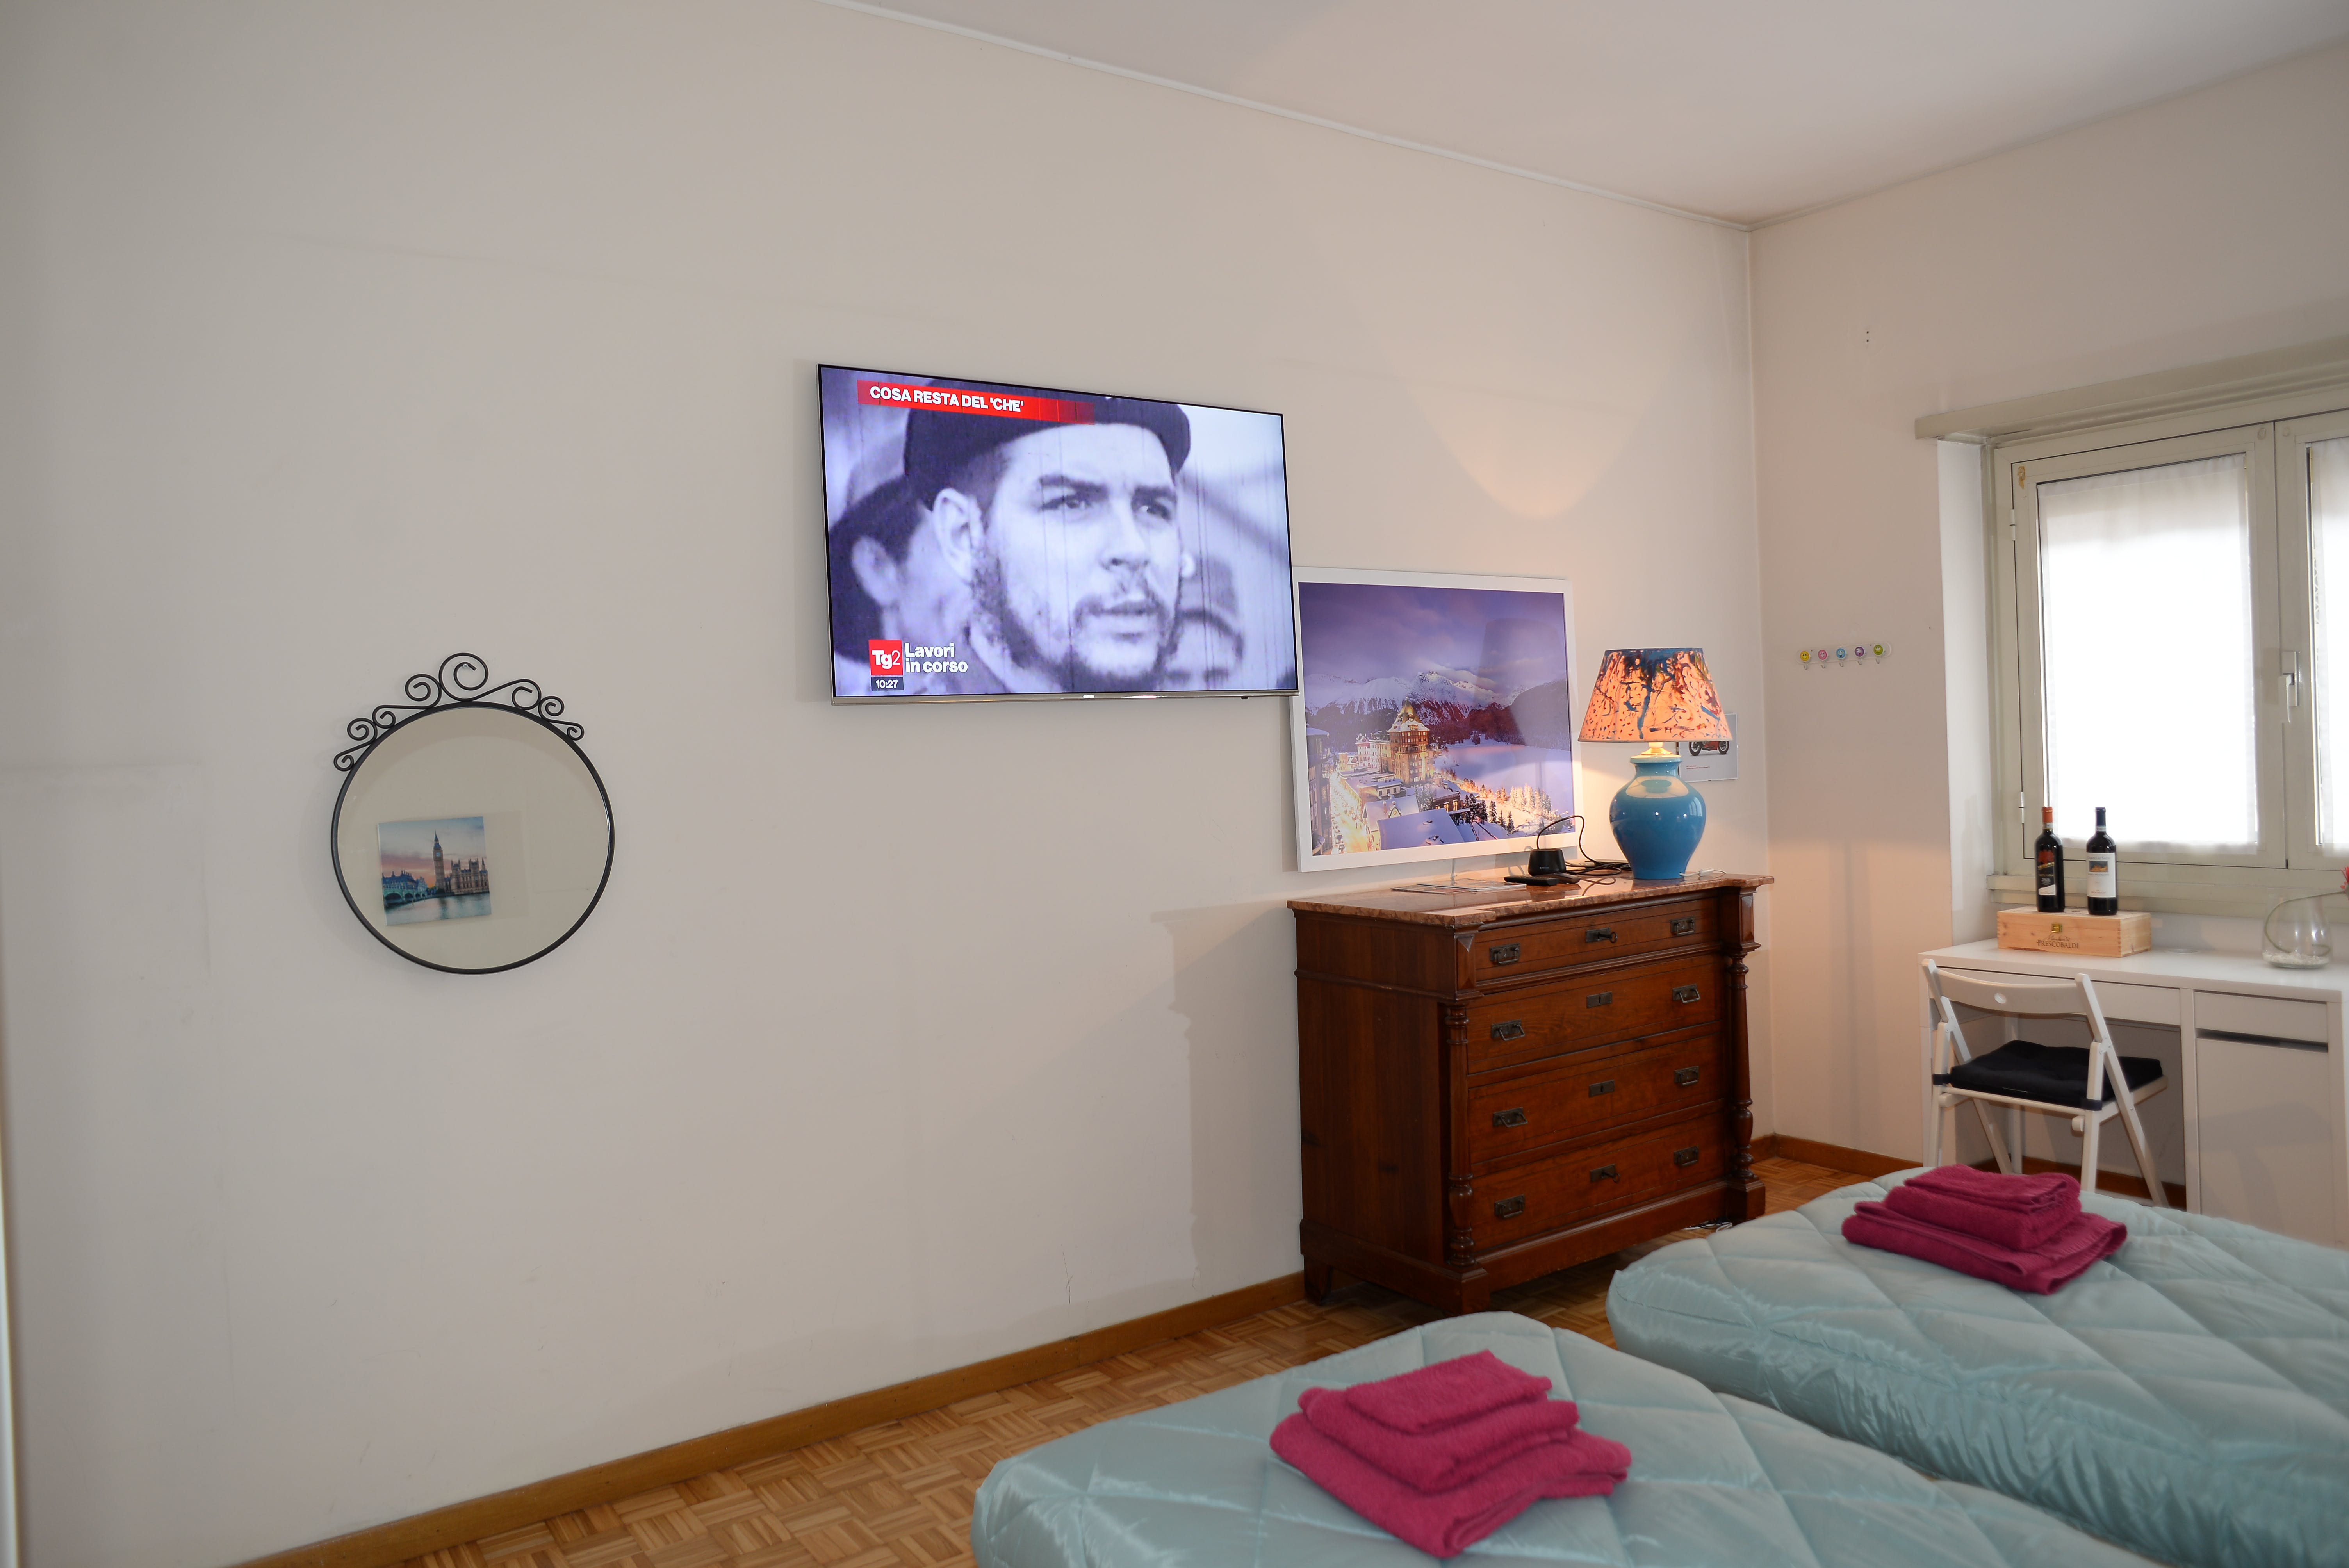 Deluxe White Room with Samsung Television 55 inches